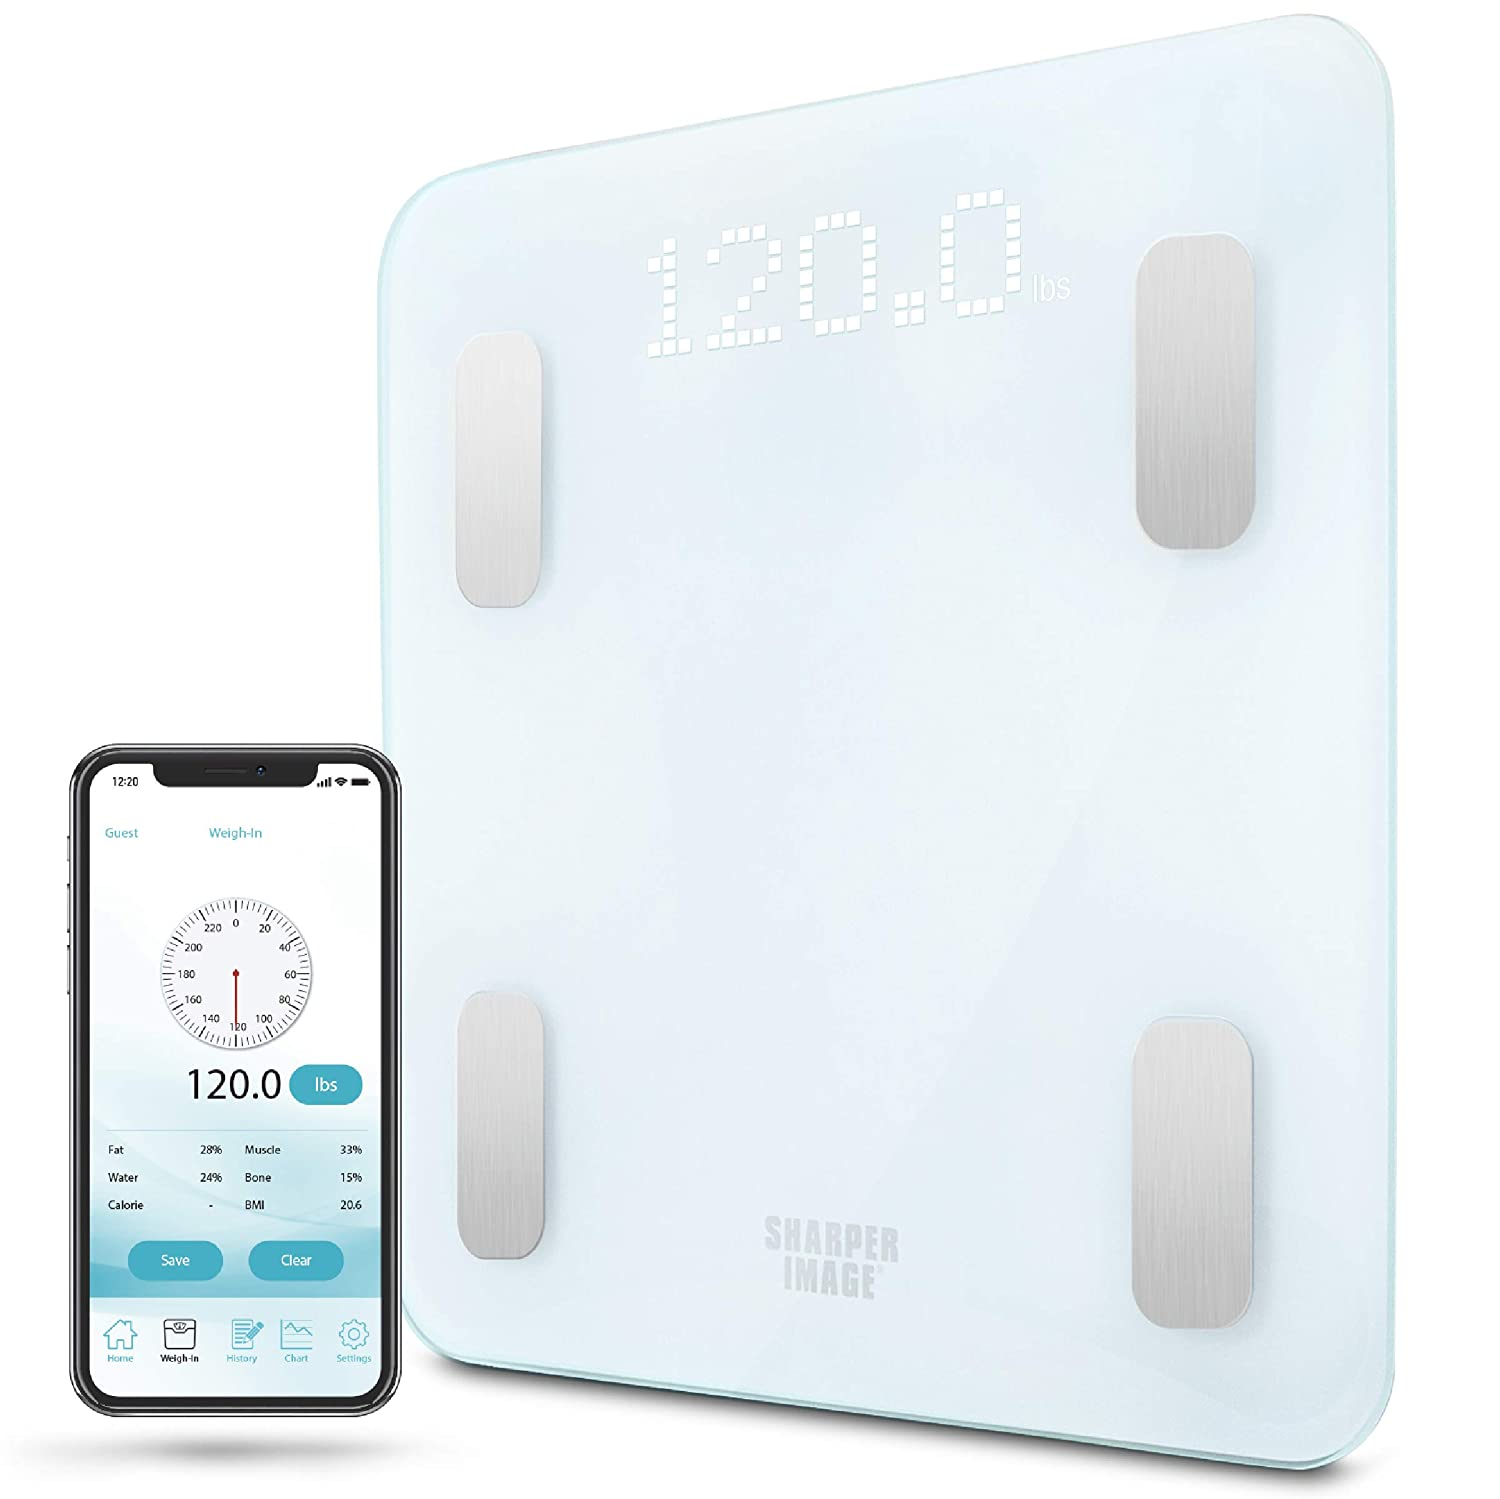 SHARPER IMAGE Digital Bathroom Scale, Tracks Weight, Body Fat BMI, Bluetooth Android iOS App Compatible